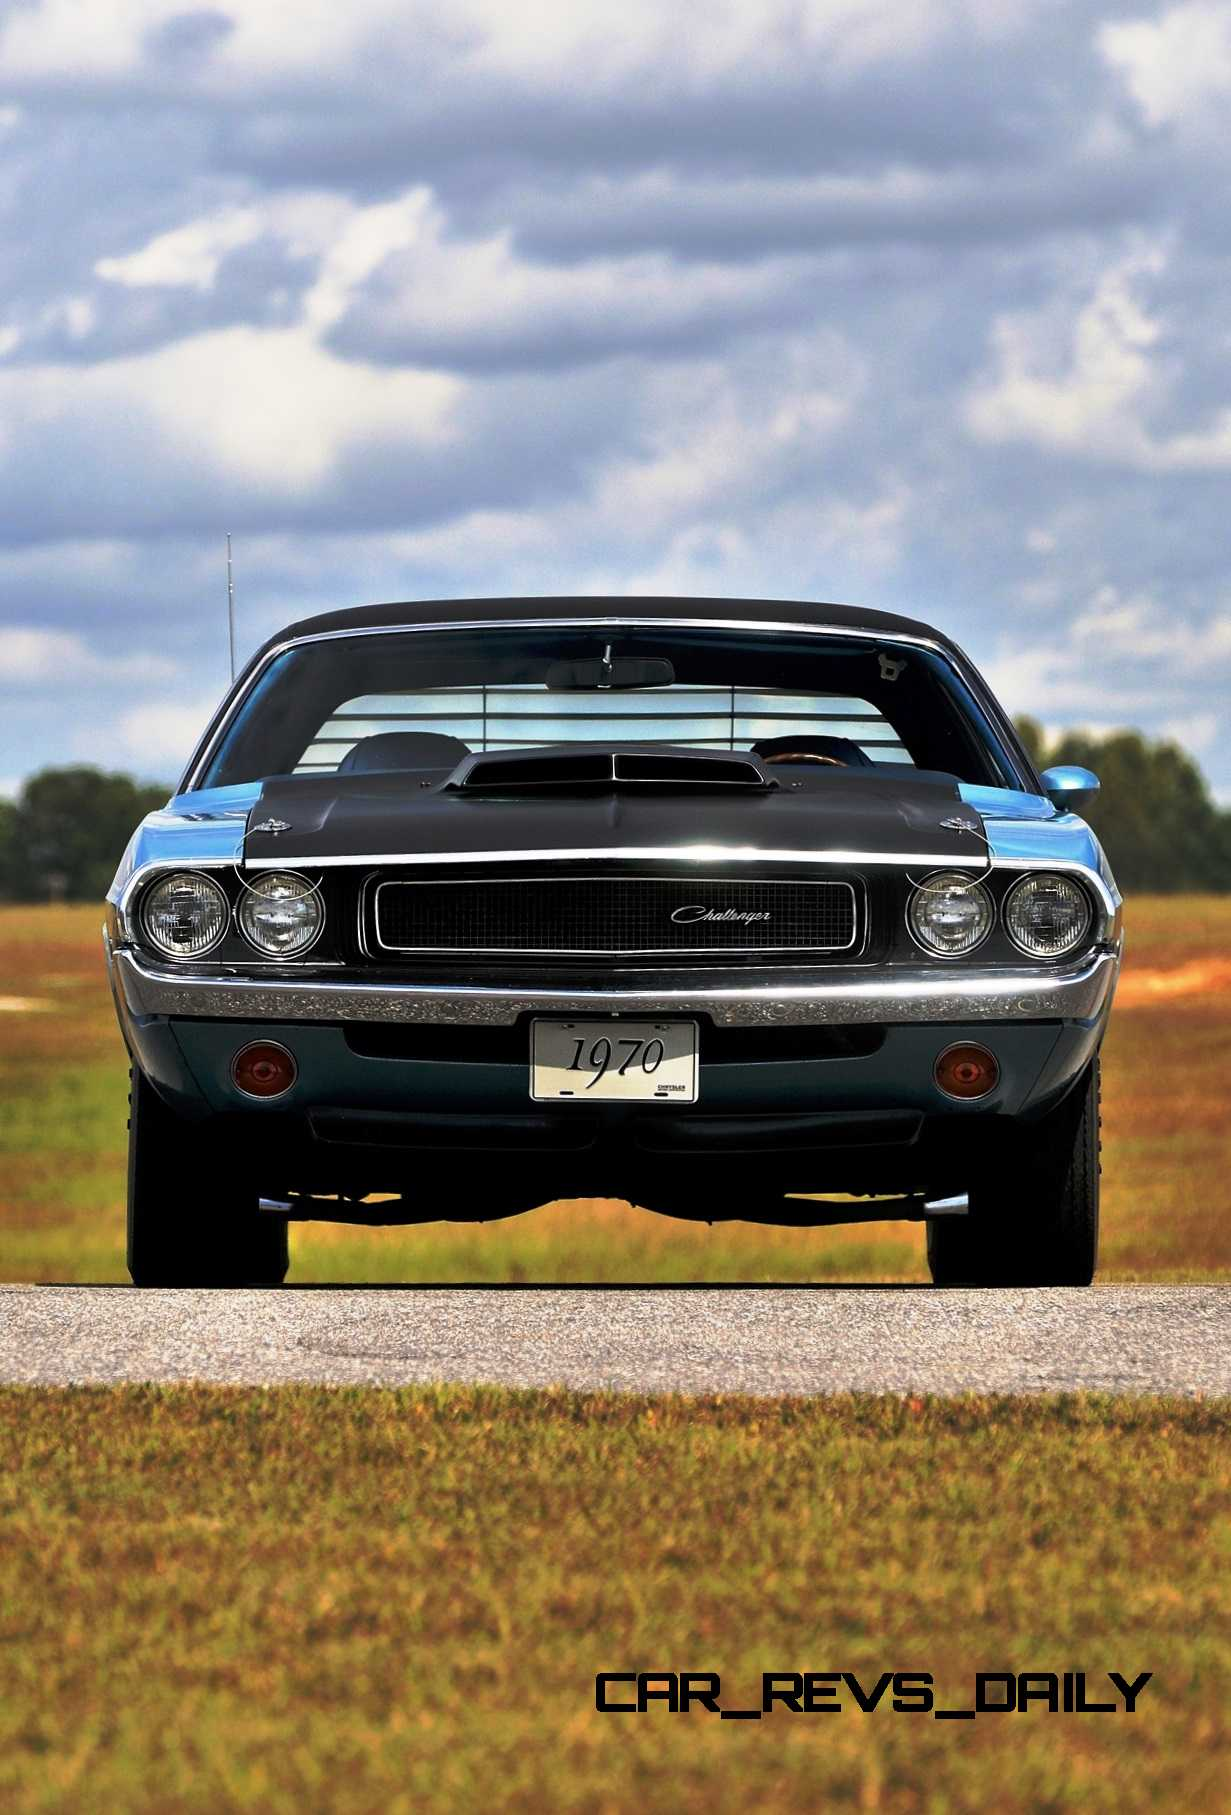 2014 Dodge Challenger For Sale >> 1970 Dodge Challenger TA